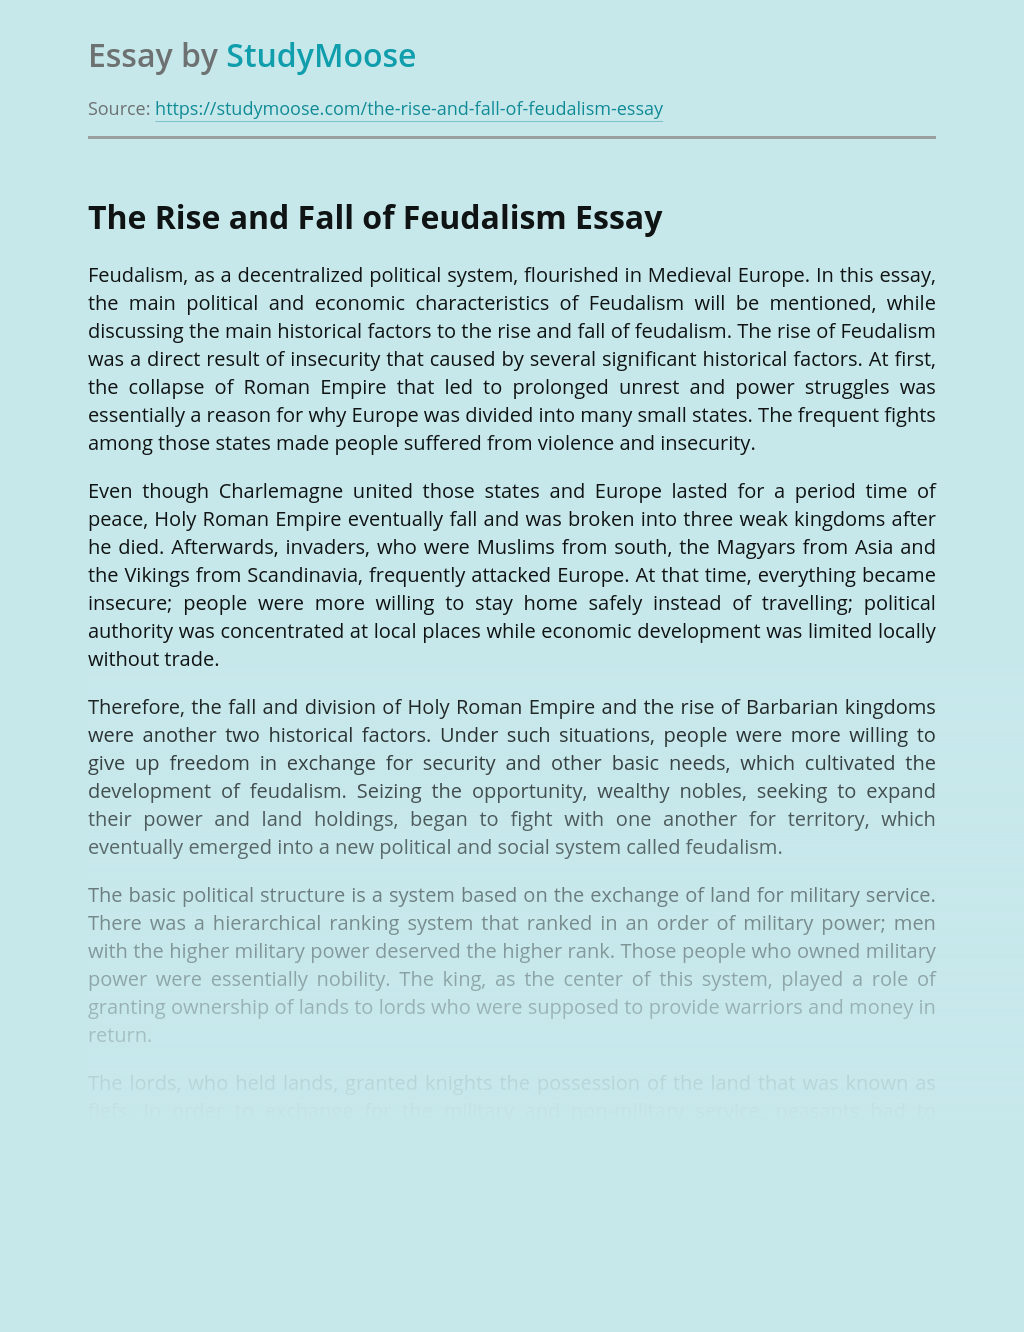 The Rise and Fall of Feudalism